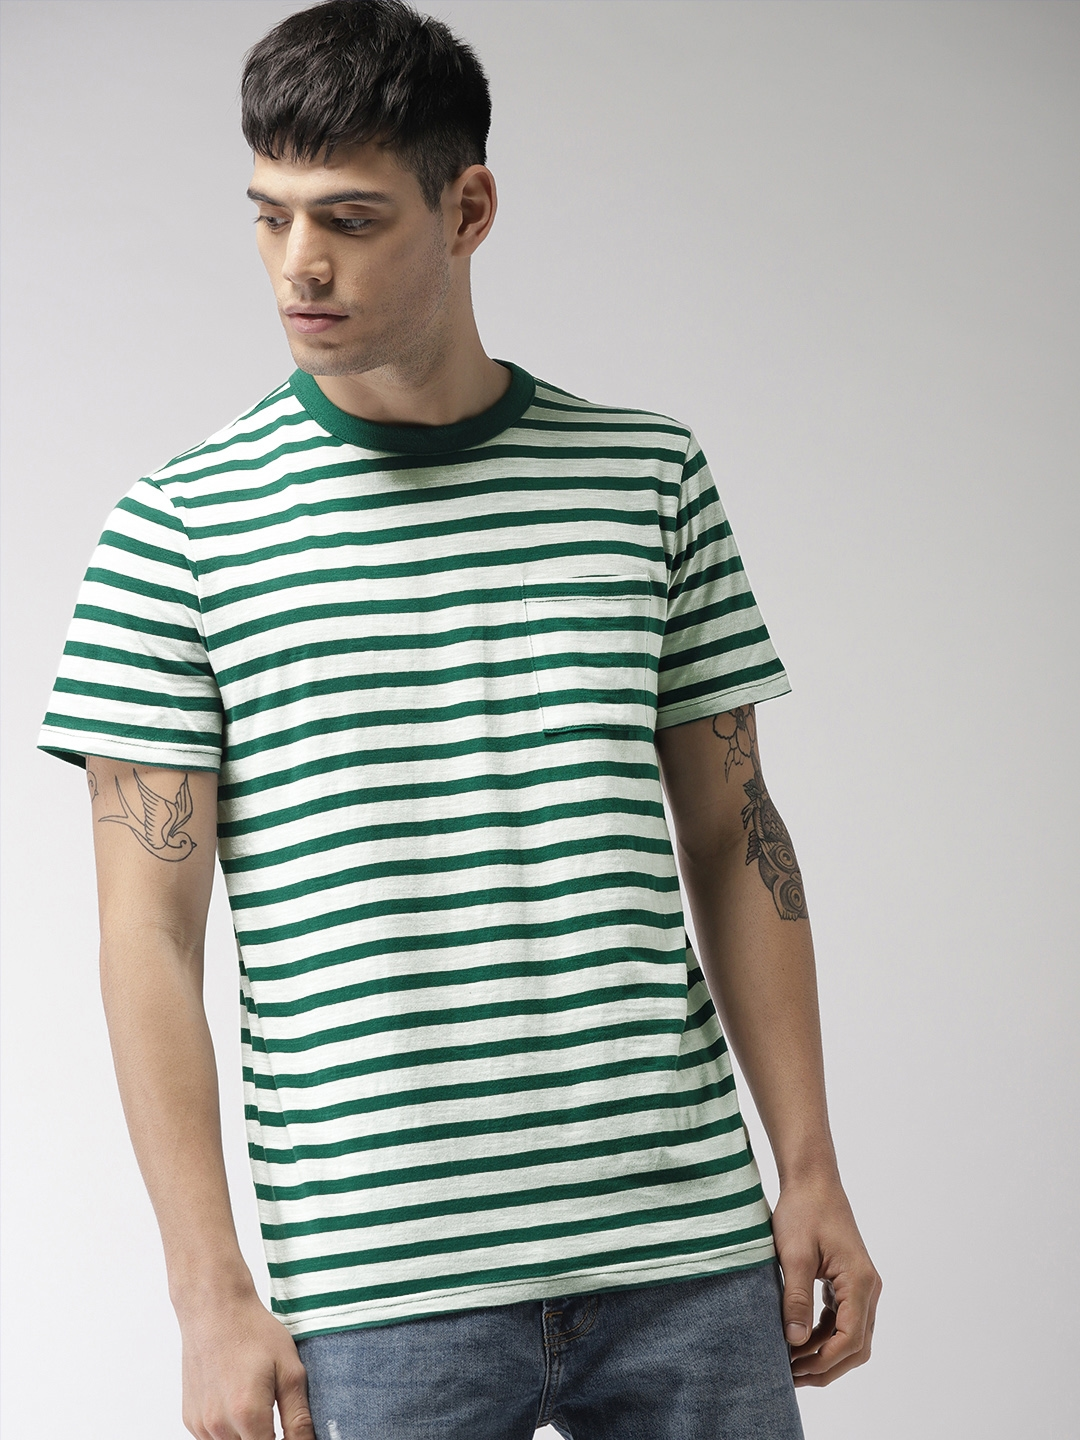 Buy Forever 21 Men White Green Striped Round Neck T Shirt